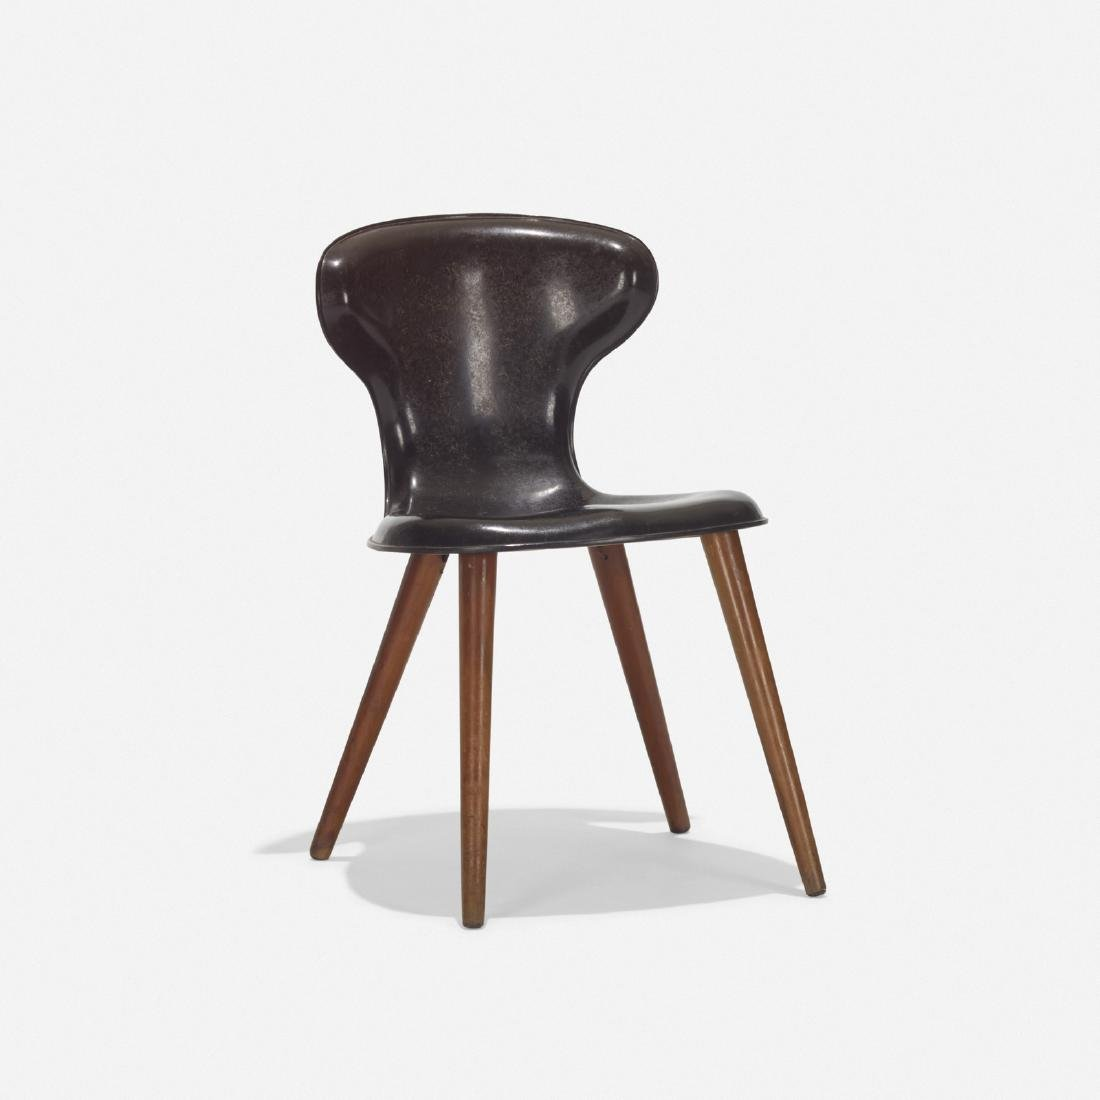 Egmont Arens, dining chair